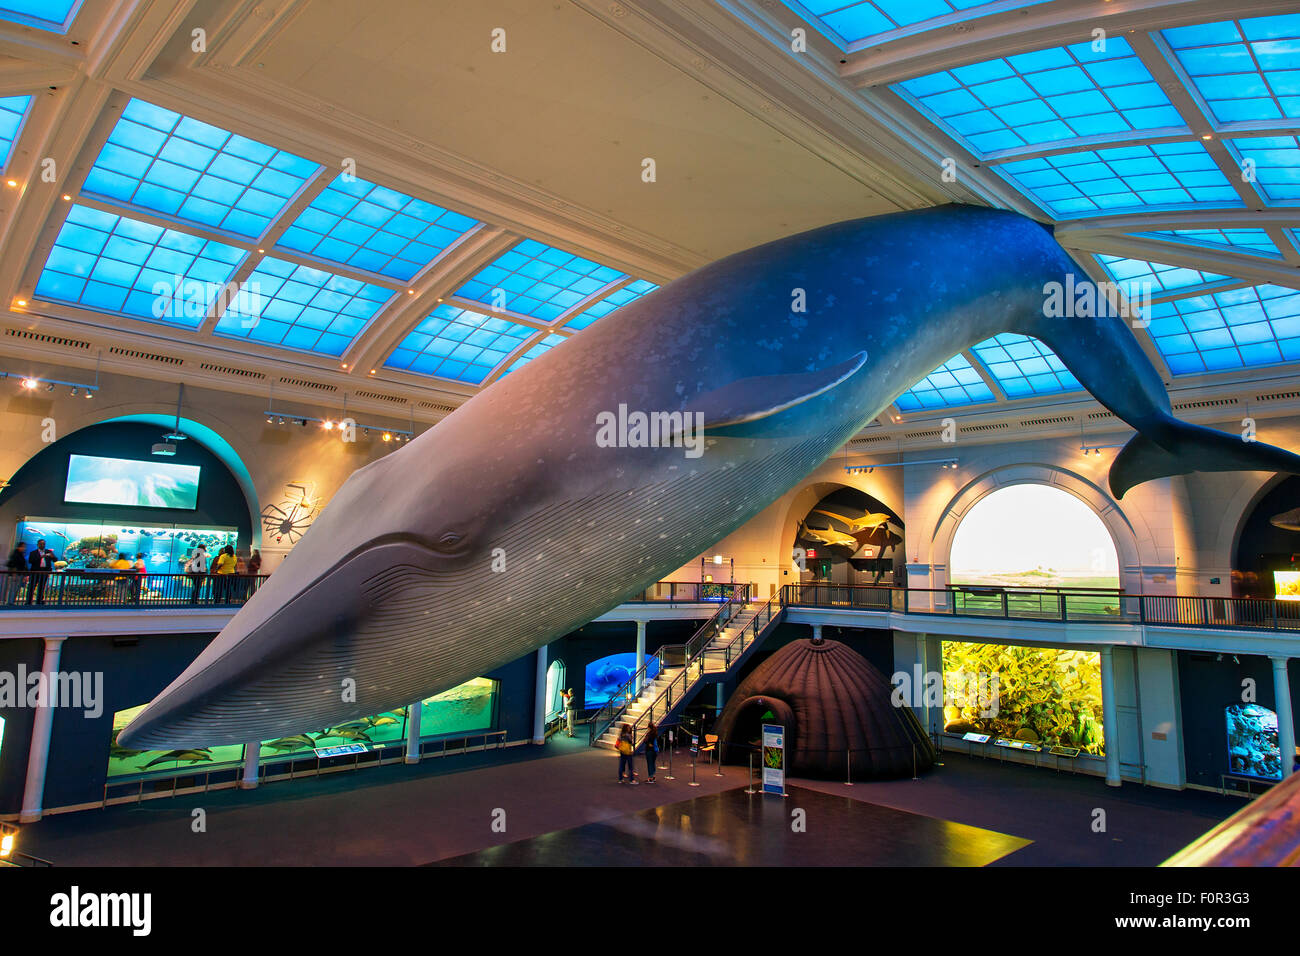 New York City, American Museum Of Natural History - Stock Image